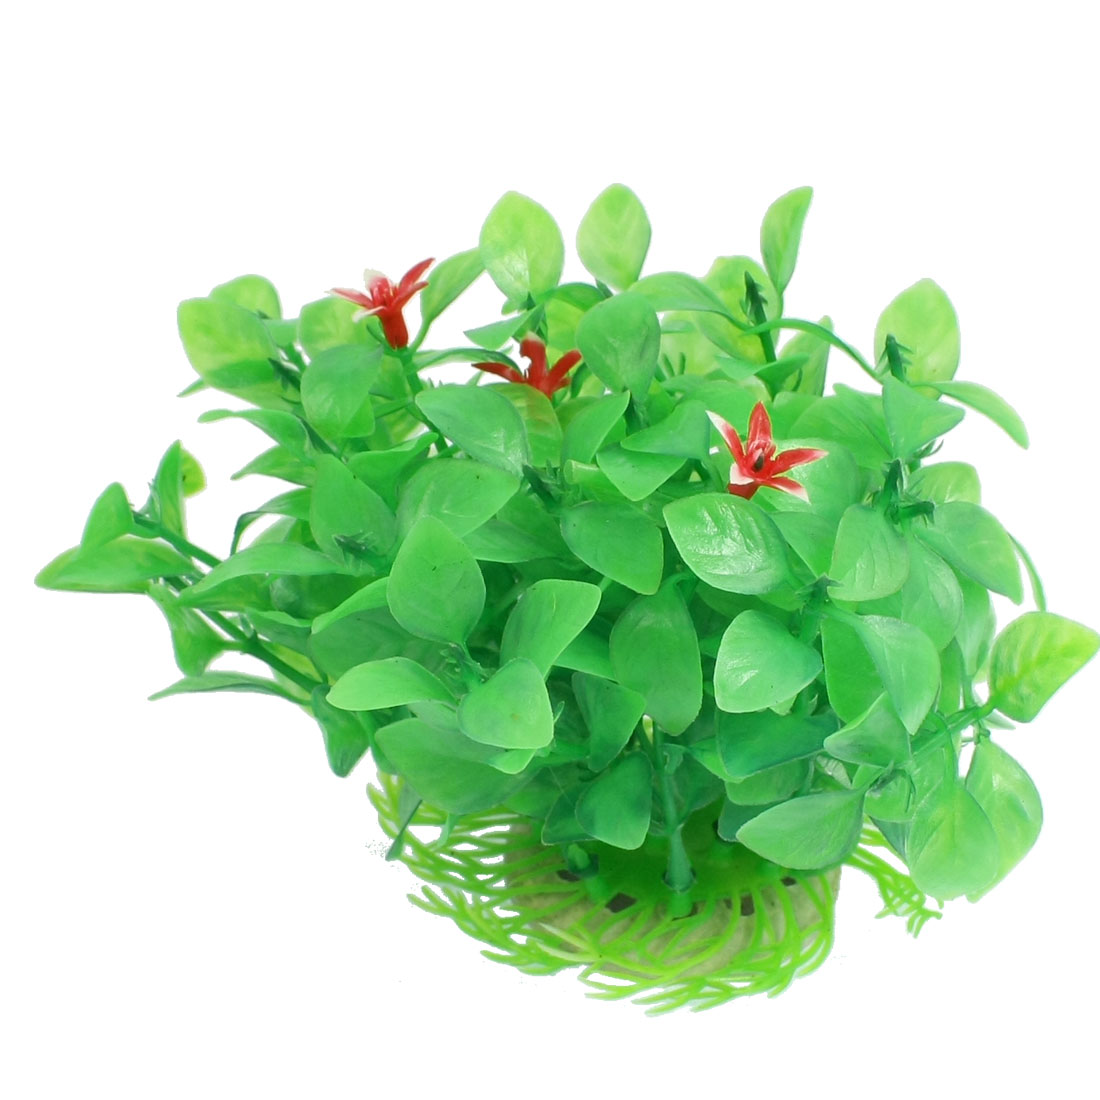 "Fish Tank Aquarium Ornament Green Plastic Grass Plant 4.8"" Height"